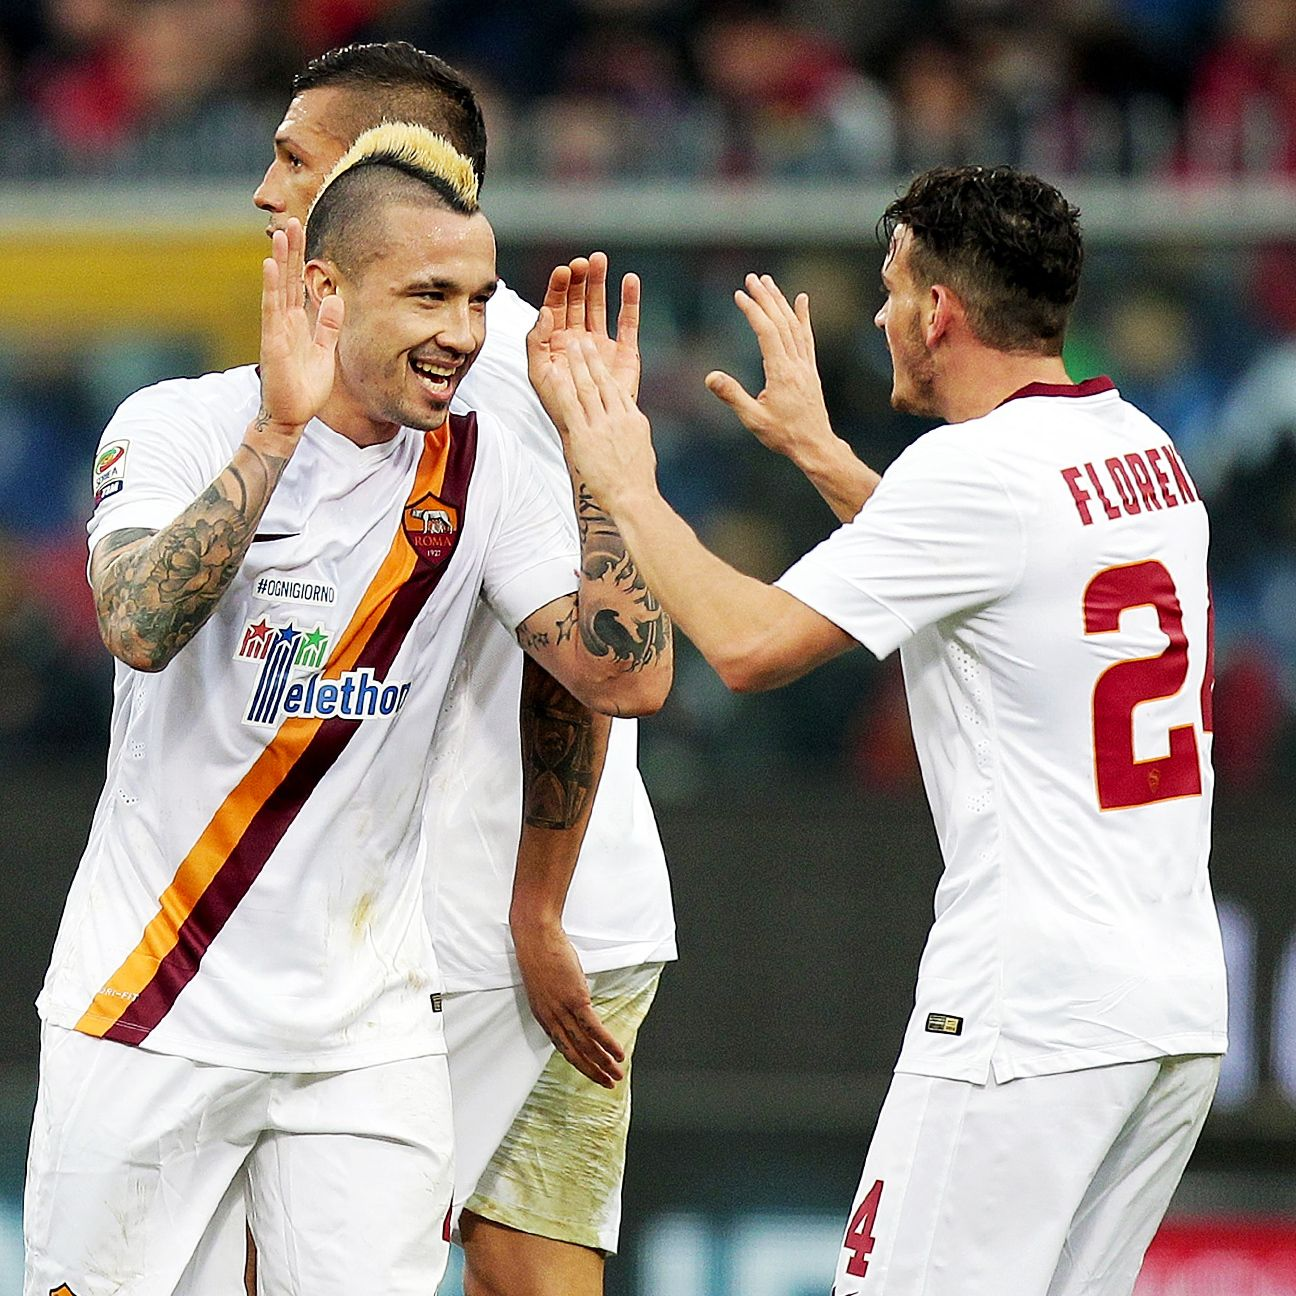 Roma shook off their Champions League disappointment to claim a crucial Serie A win at Genoa and edge closer to first place Juventus.